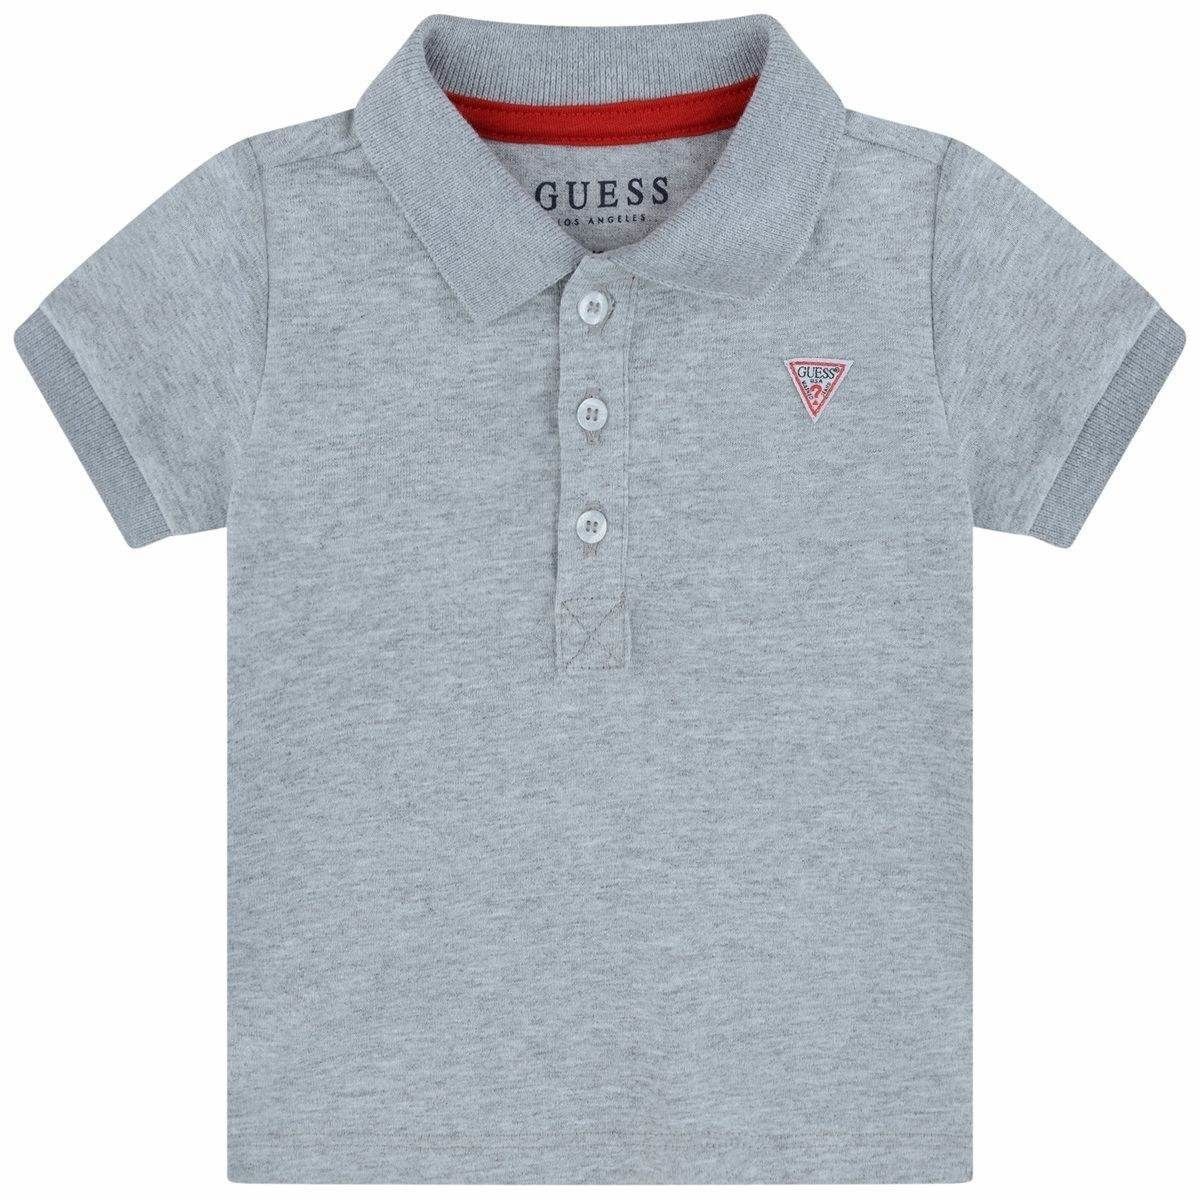 Guess Guess Boys Grey Poloshirt with small Logo